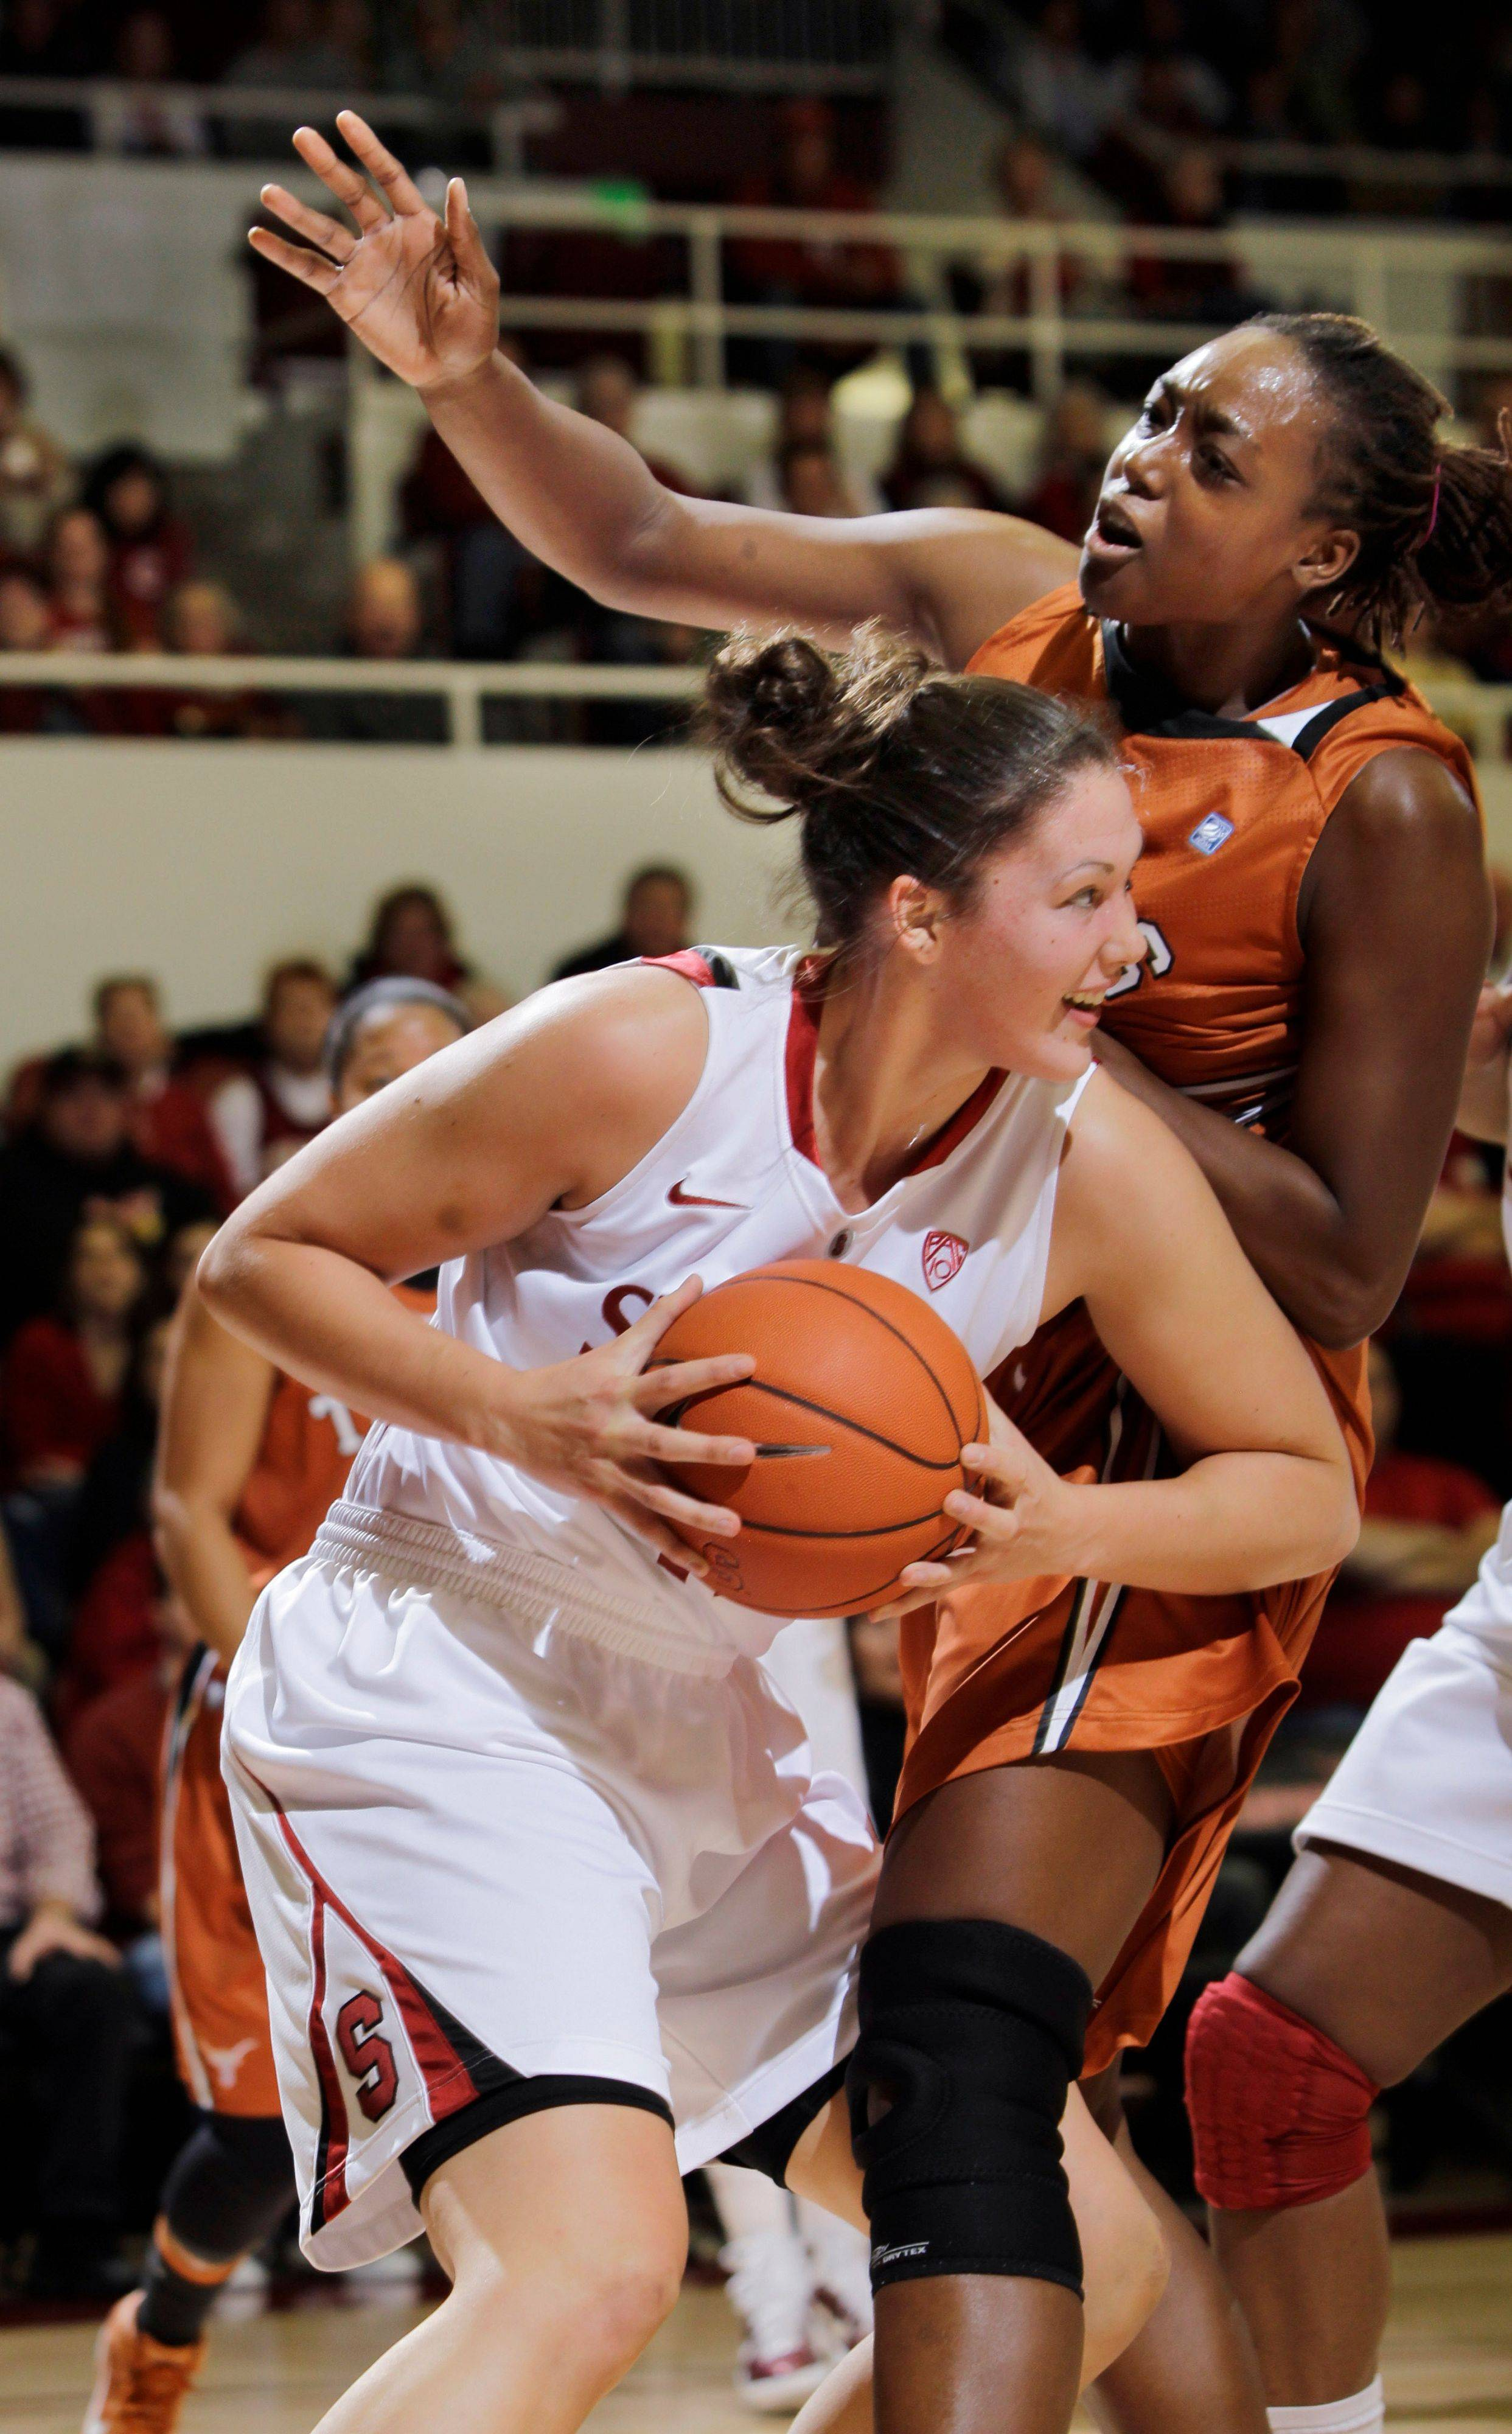 Stanford's Sarah Boothe, a 6-5 center from Warren Township High School, tries to get past Texas forward Ashley Gayle.